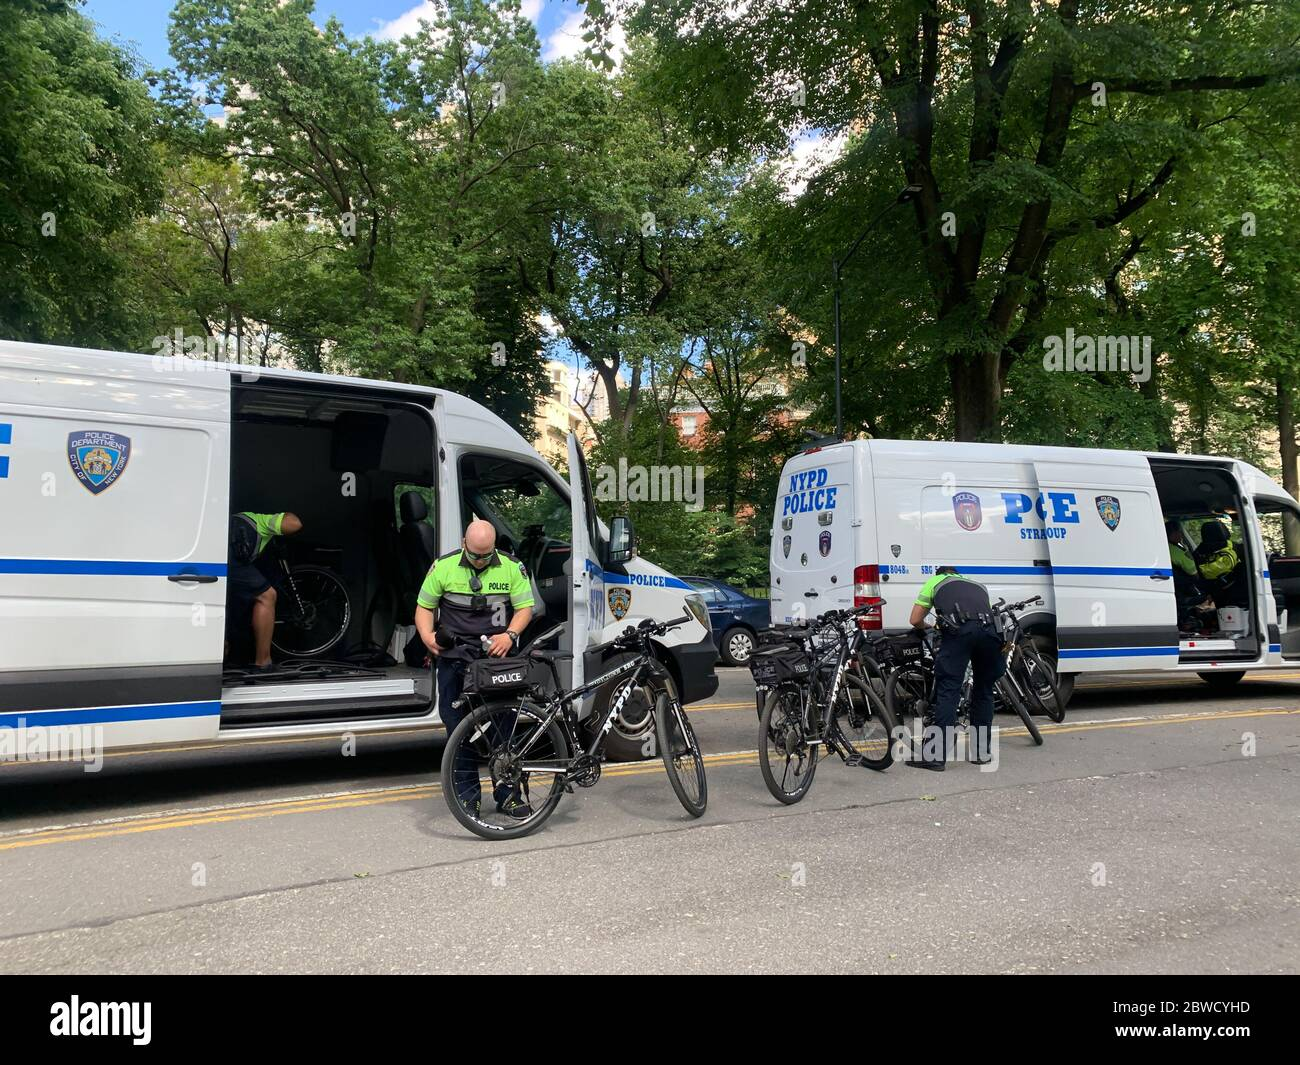 New York, New York, USA. 31st May, 2020. (NEW) Police officers on bikes getting ready for George Floyd protest. May 31, 2020, New York, USA: Police officers on bikes at Central Park are getting ready for tonight's protest in Manhattan in favor of George Floyd, the black American who was murdered by a policeman on Monday (25) in Minneapolis. Protesters were destroying police cars during previous protests and now, NYPD decided to use bikes to monitor tonight's protest in the city.Credit: Niyi Fote /Thenews2 Credit: Niyi Fote/TheNEWS2/ZUMA Wire/Alamy Live News Stock Photo